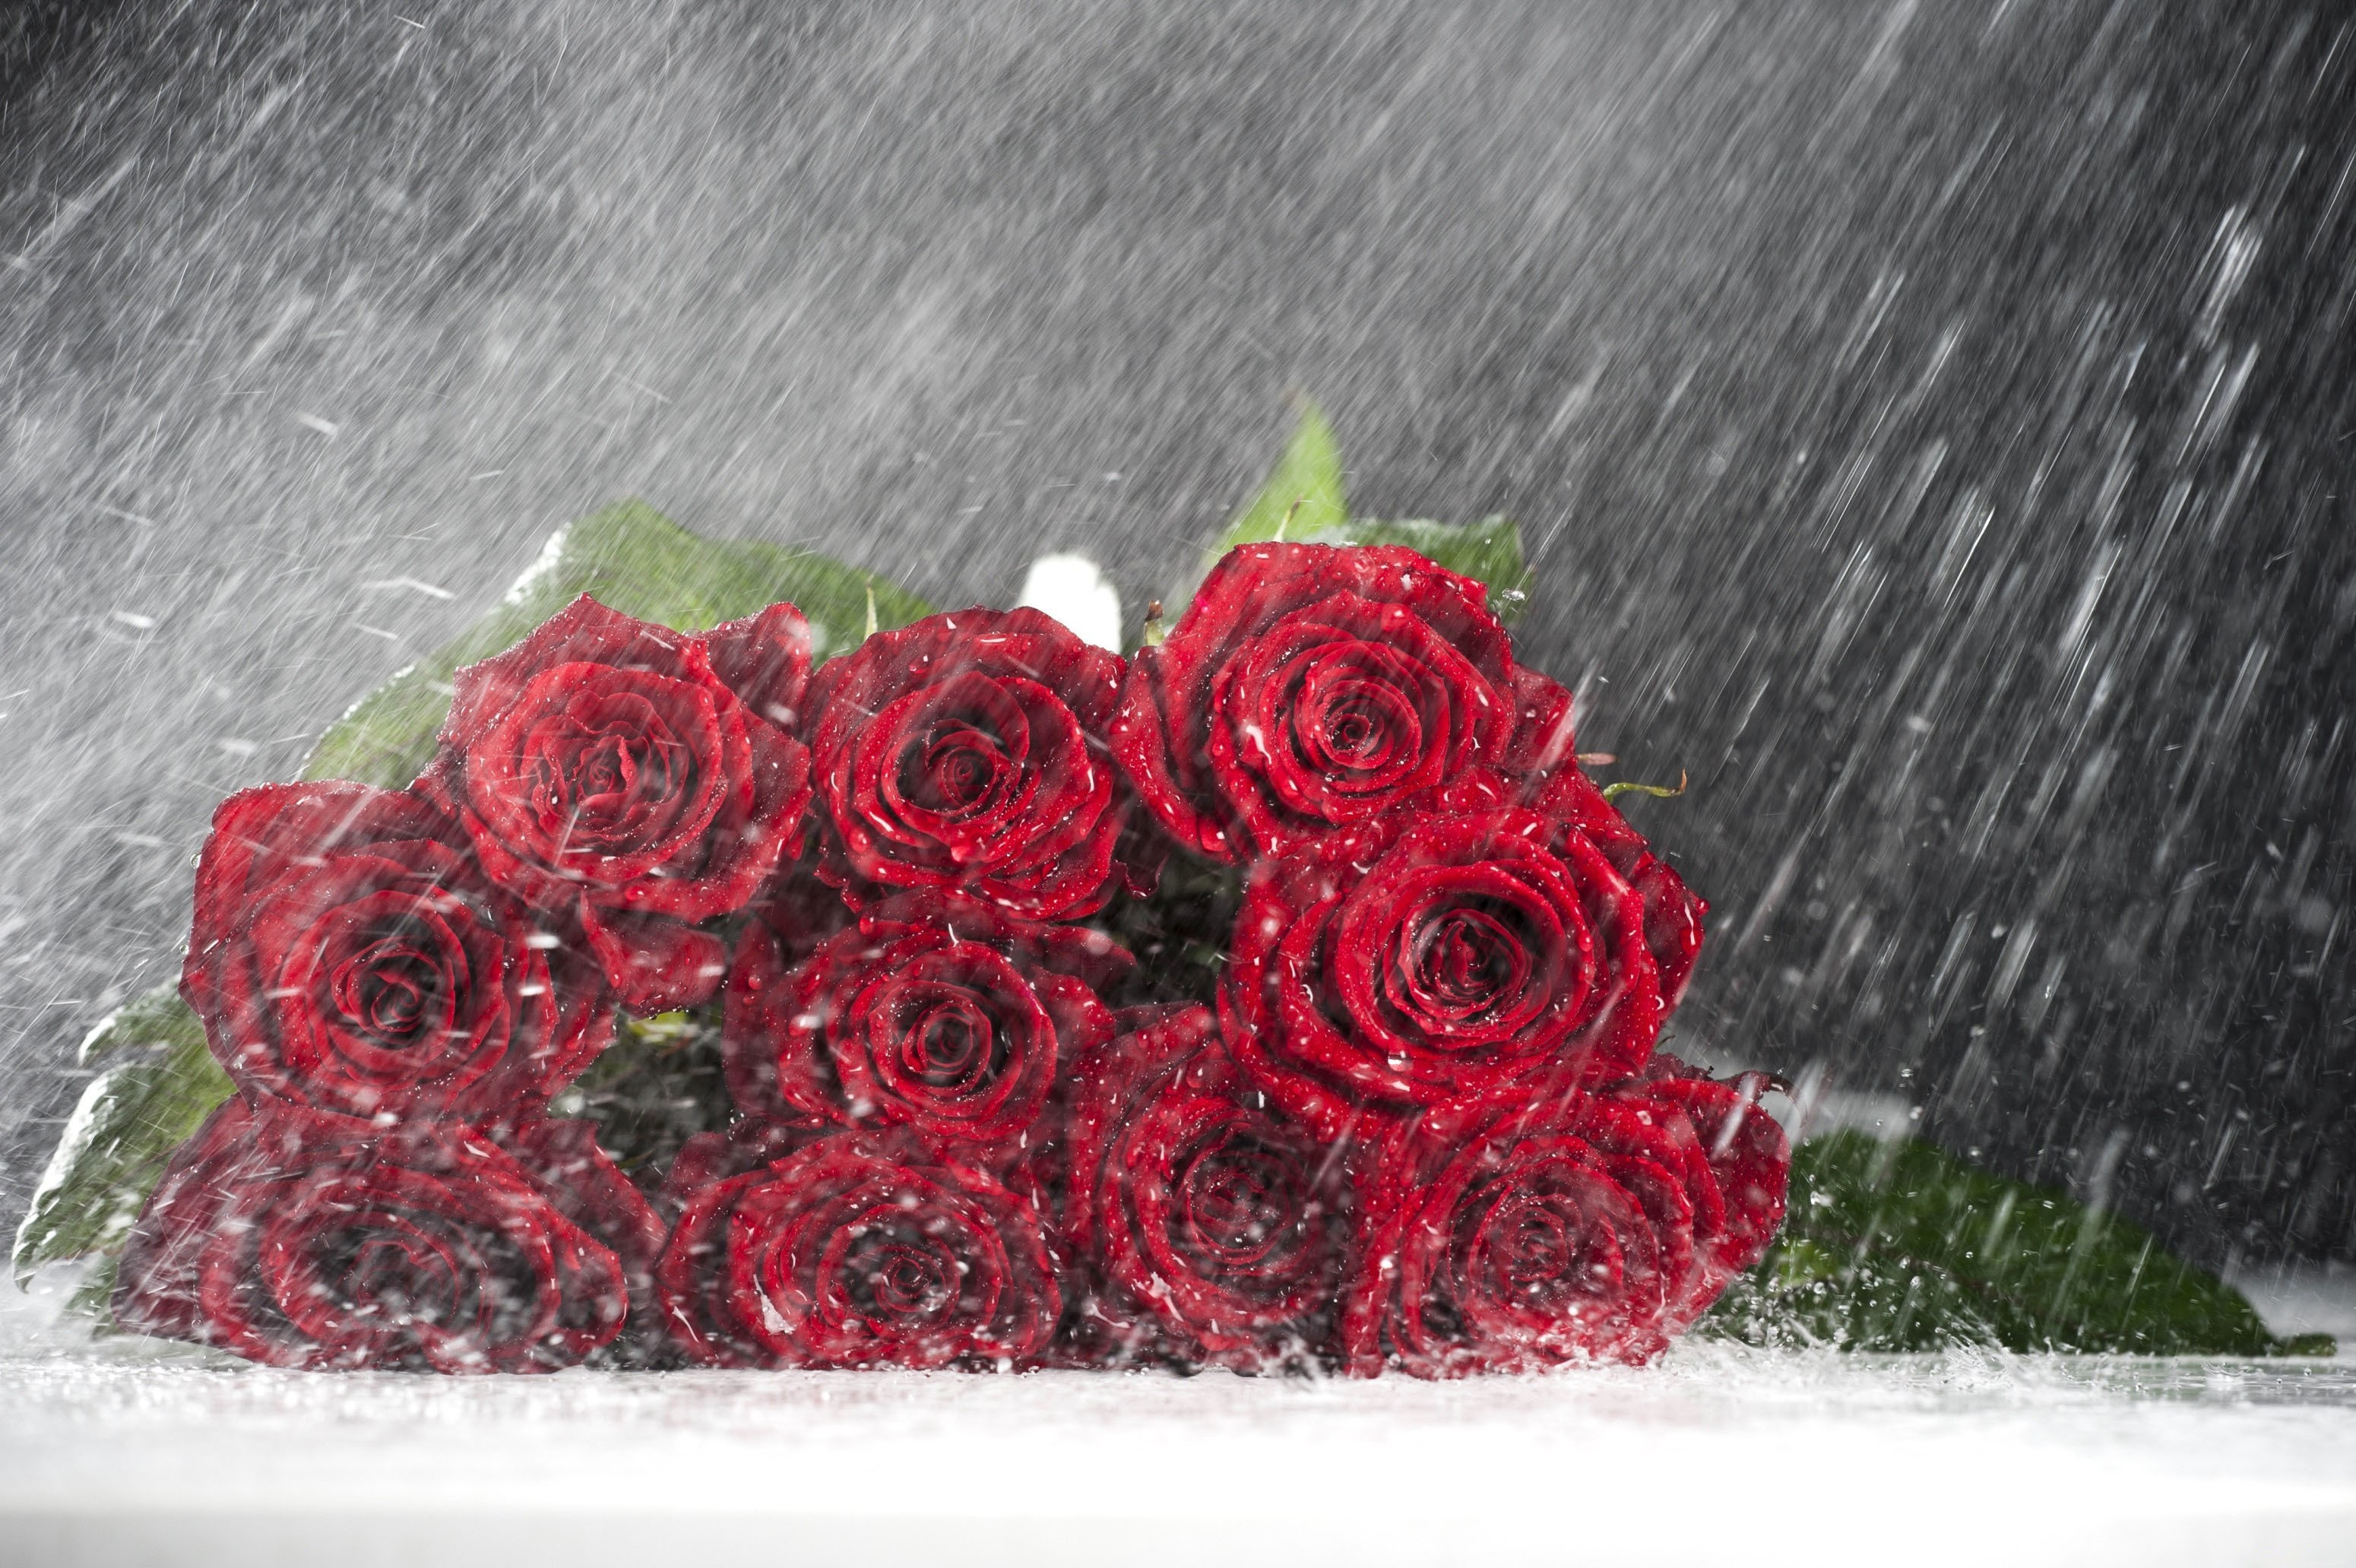 Res: 3100x2063, Nature Rain Love Drops Red Flowers Rose Roses Flower Wallpaper Black And  White